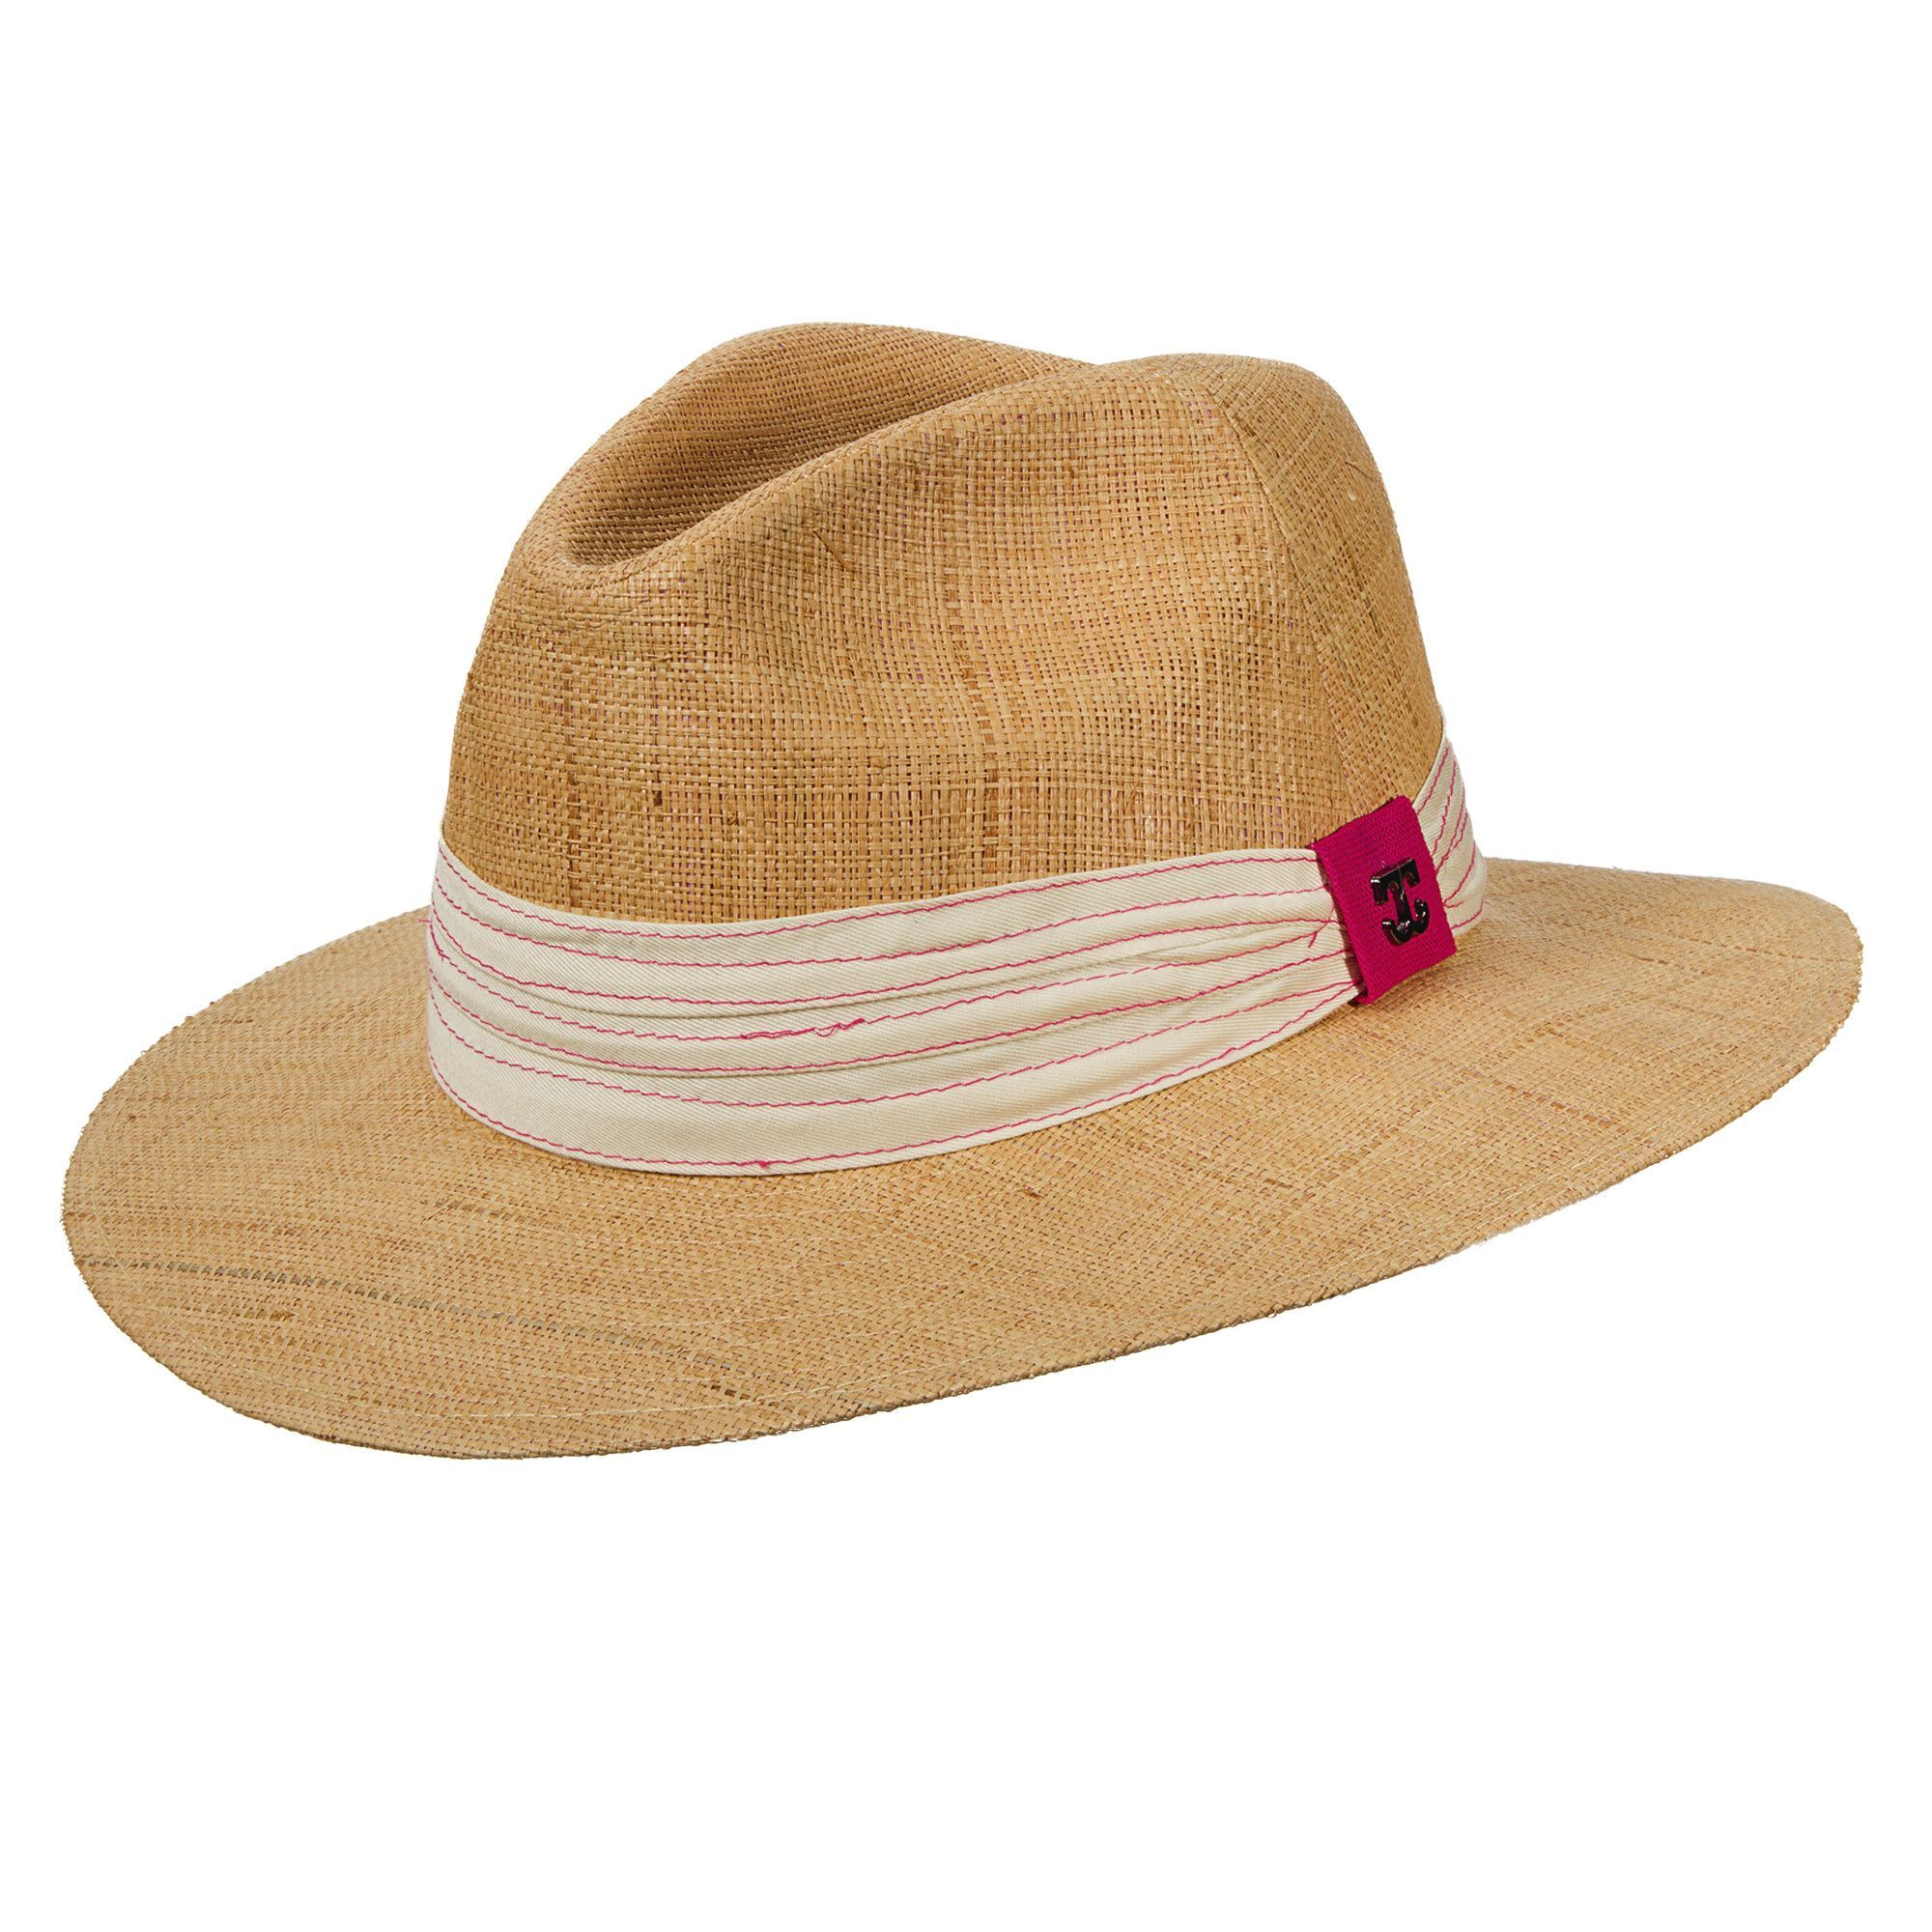 27d40799ce9689 Matte Raffia Safari Hat by Callanan | Products | Safari hat, Hats ...